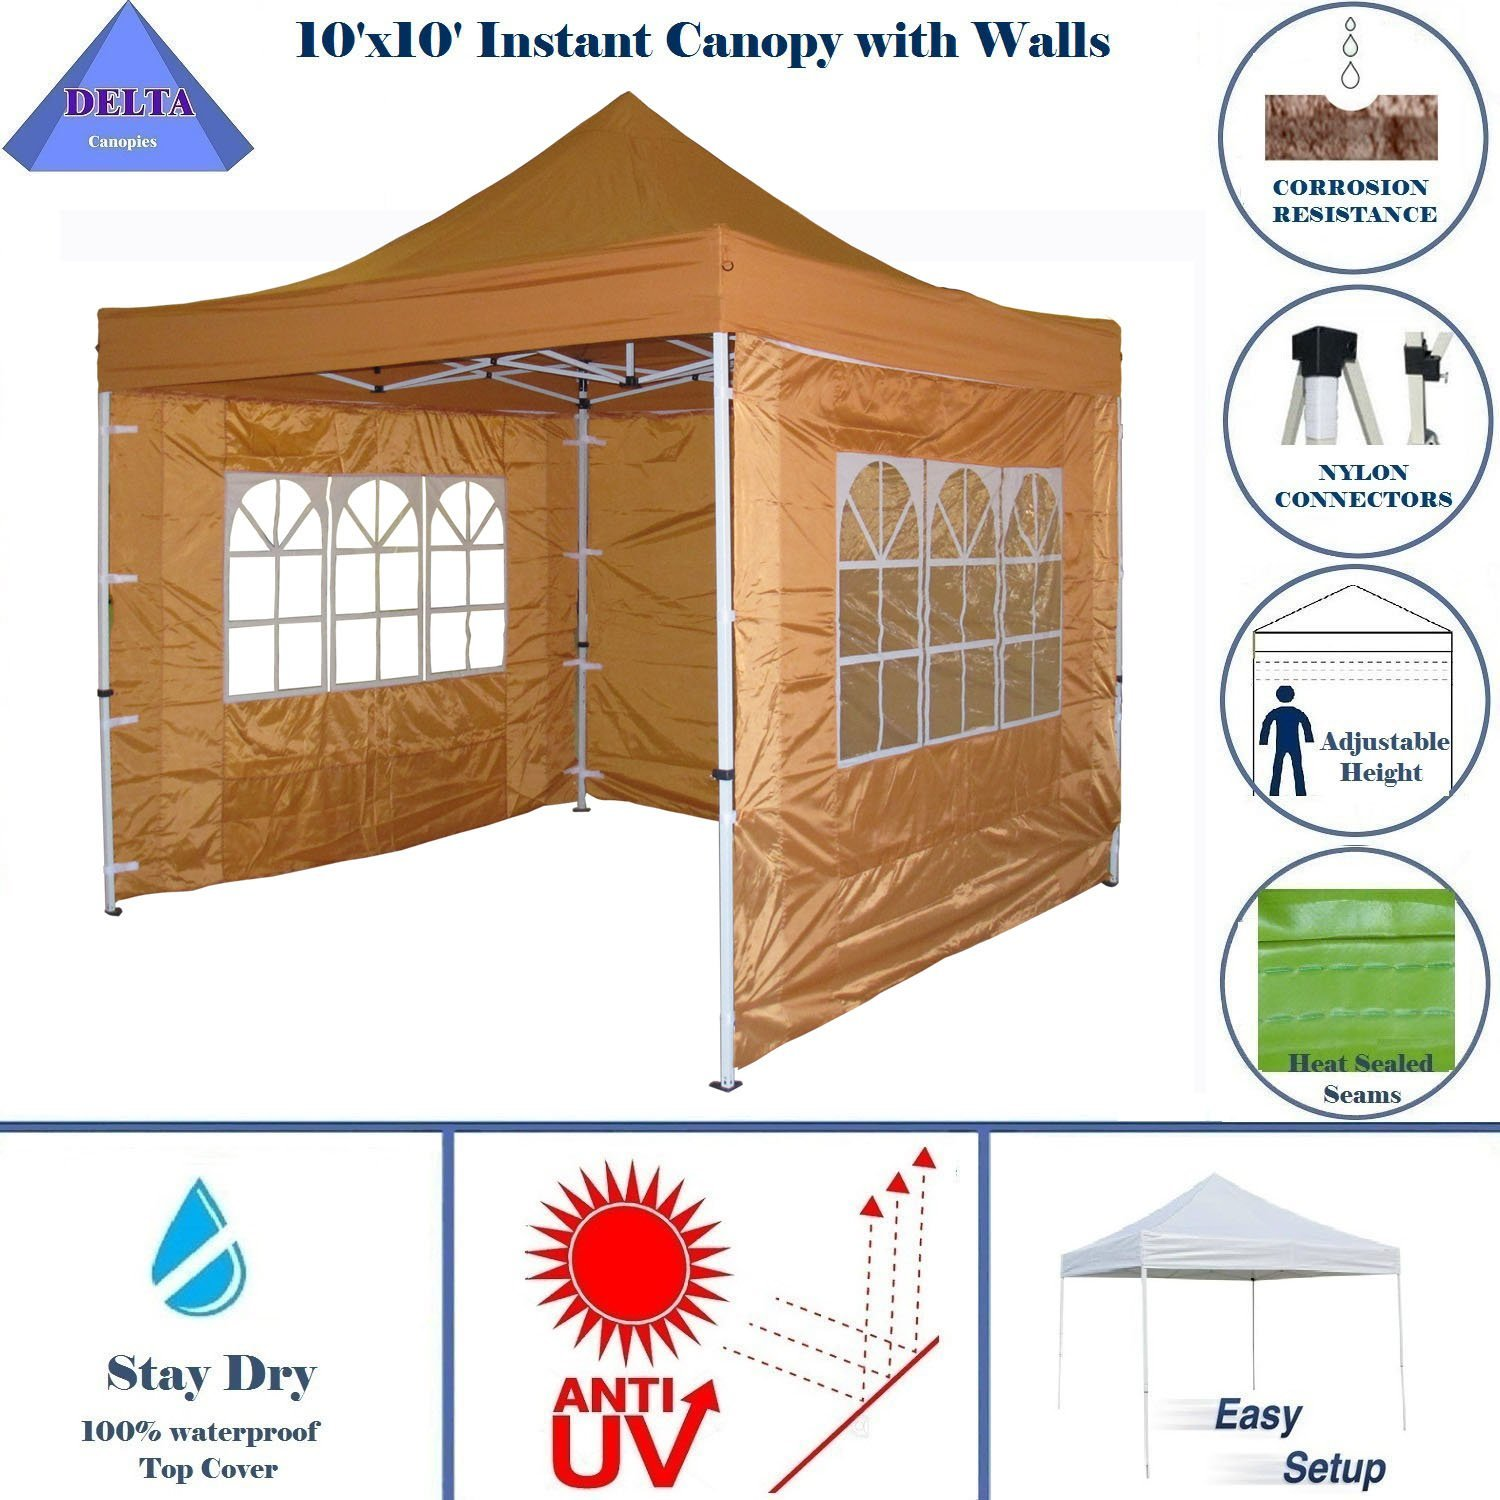 10'x10' Pop up Canopy Party Tent Gazebo EZ Burnt Orange - E Model by DELTA Canopies